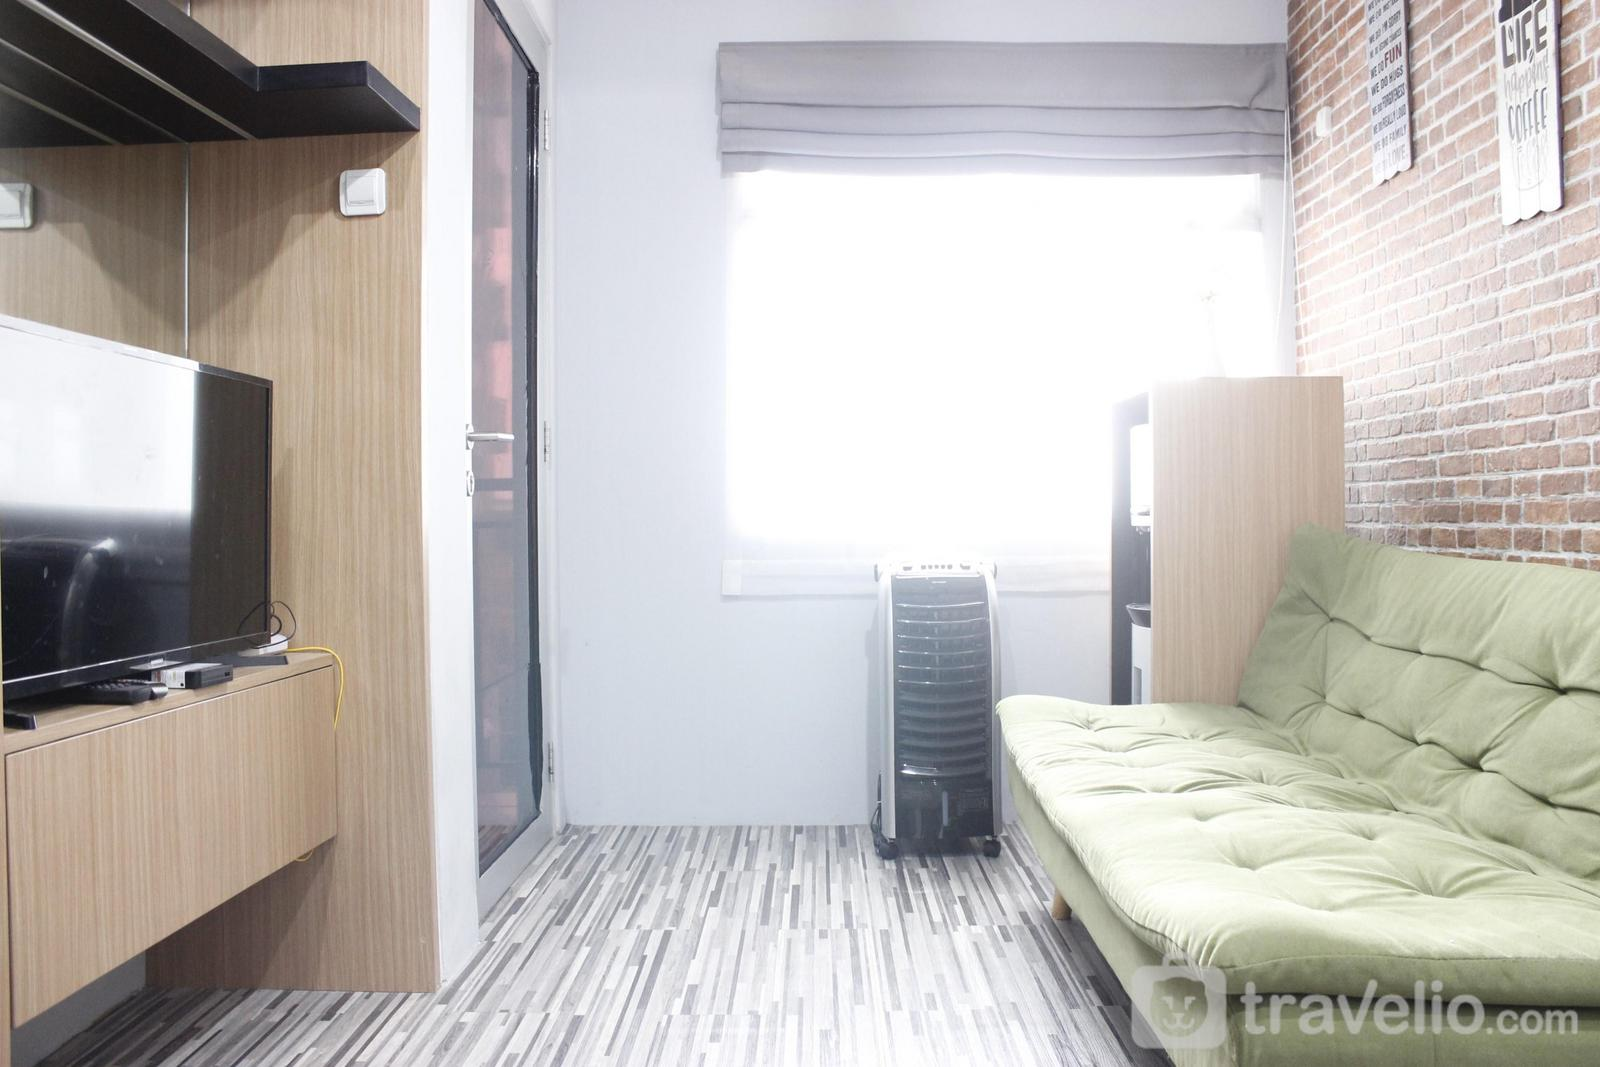 Grand Asia Afrika Apartment - Modern 2BR Apartment at Grand Asia Afrika Residence By Travelio